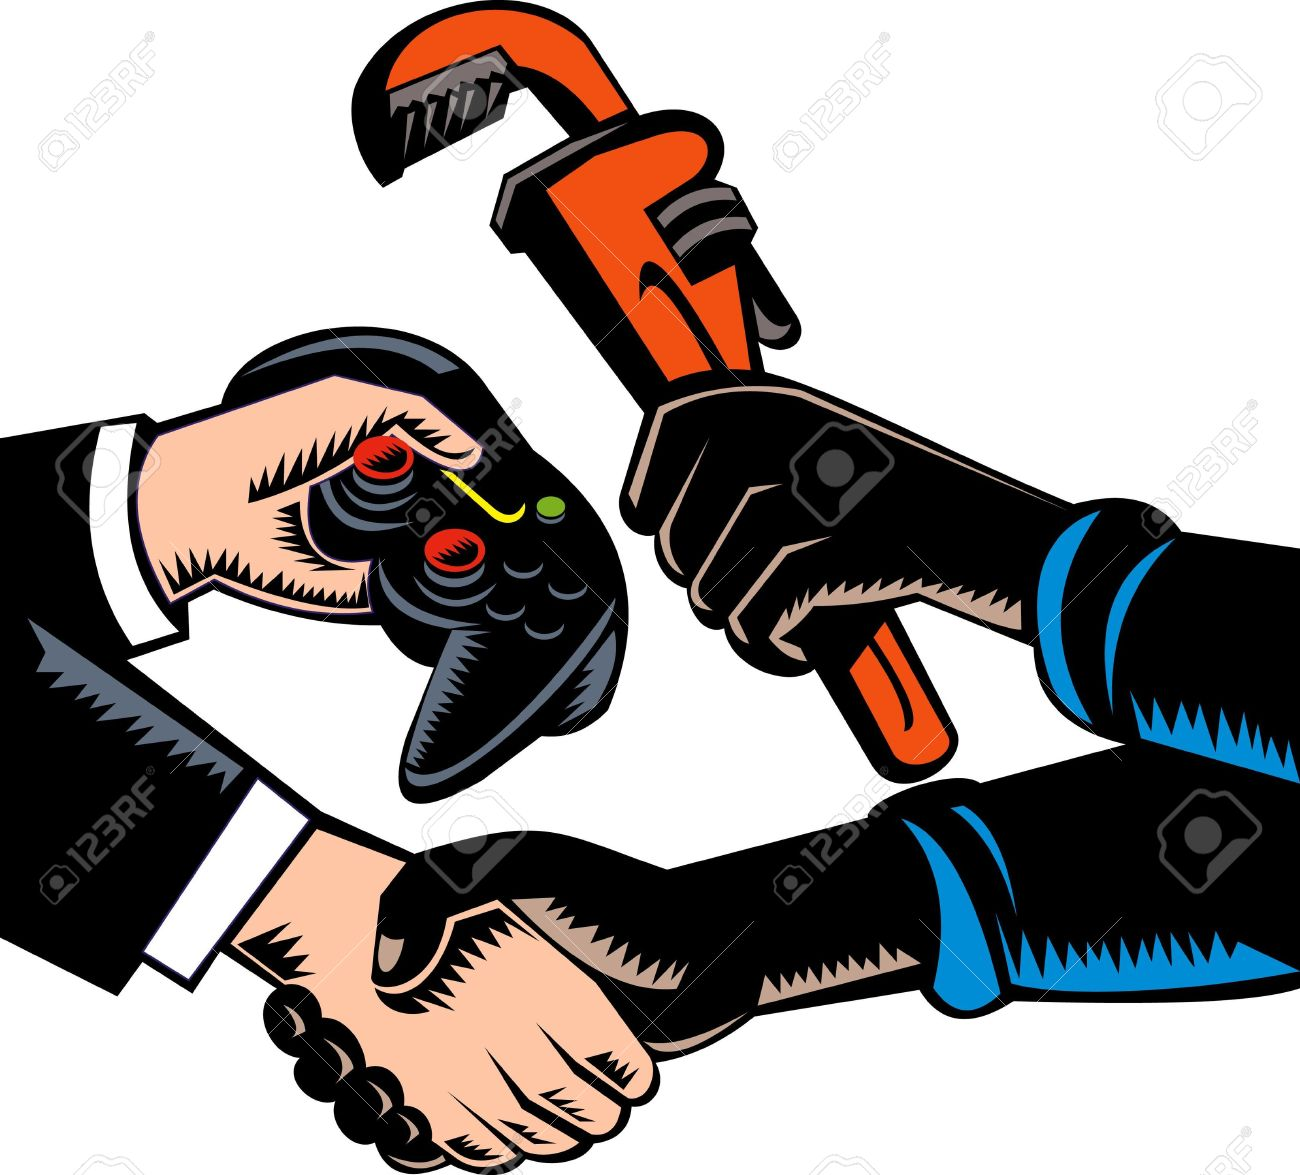 hand swapping plumbing services and game controller Stock Photo - 7238267